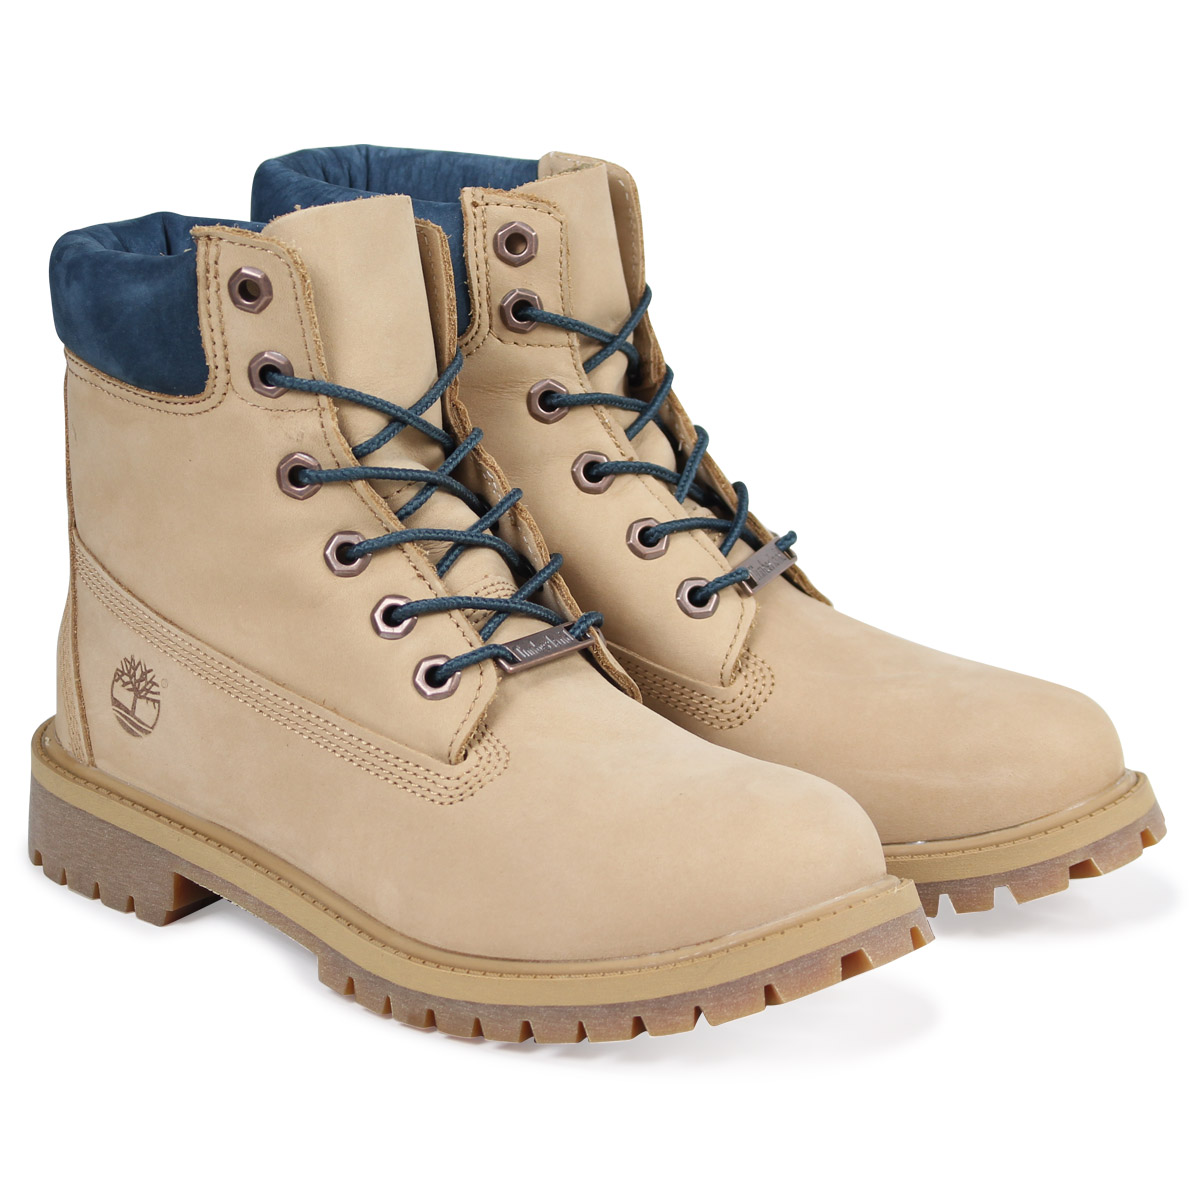 Timberland JUNIOR 6INCH WATERPROOF BOOT Timberland Lady's boots 6 inches kids A1PLO W Wise waterproofing beige [load planned Shinnyu load in